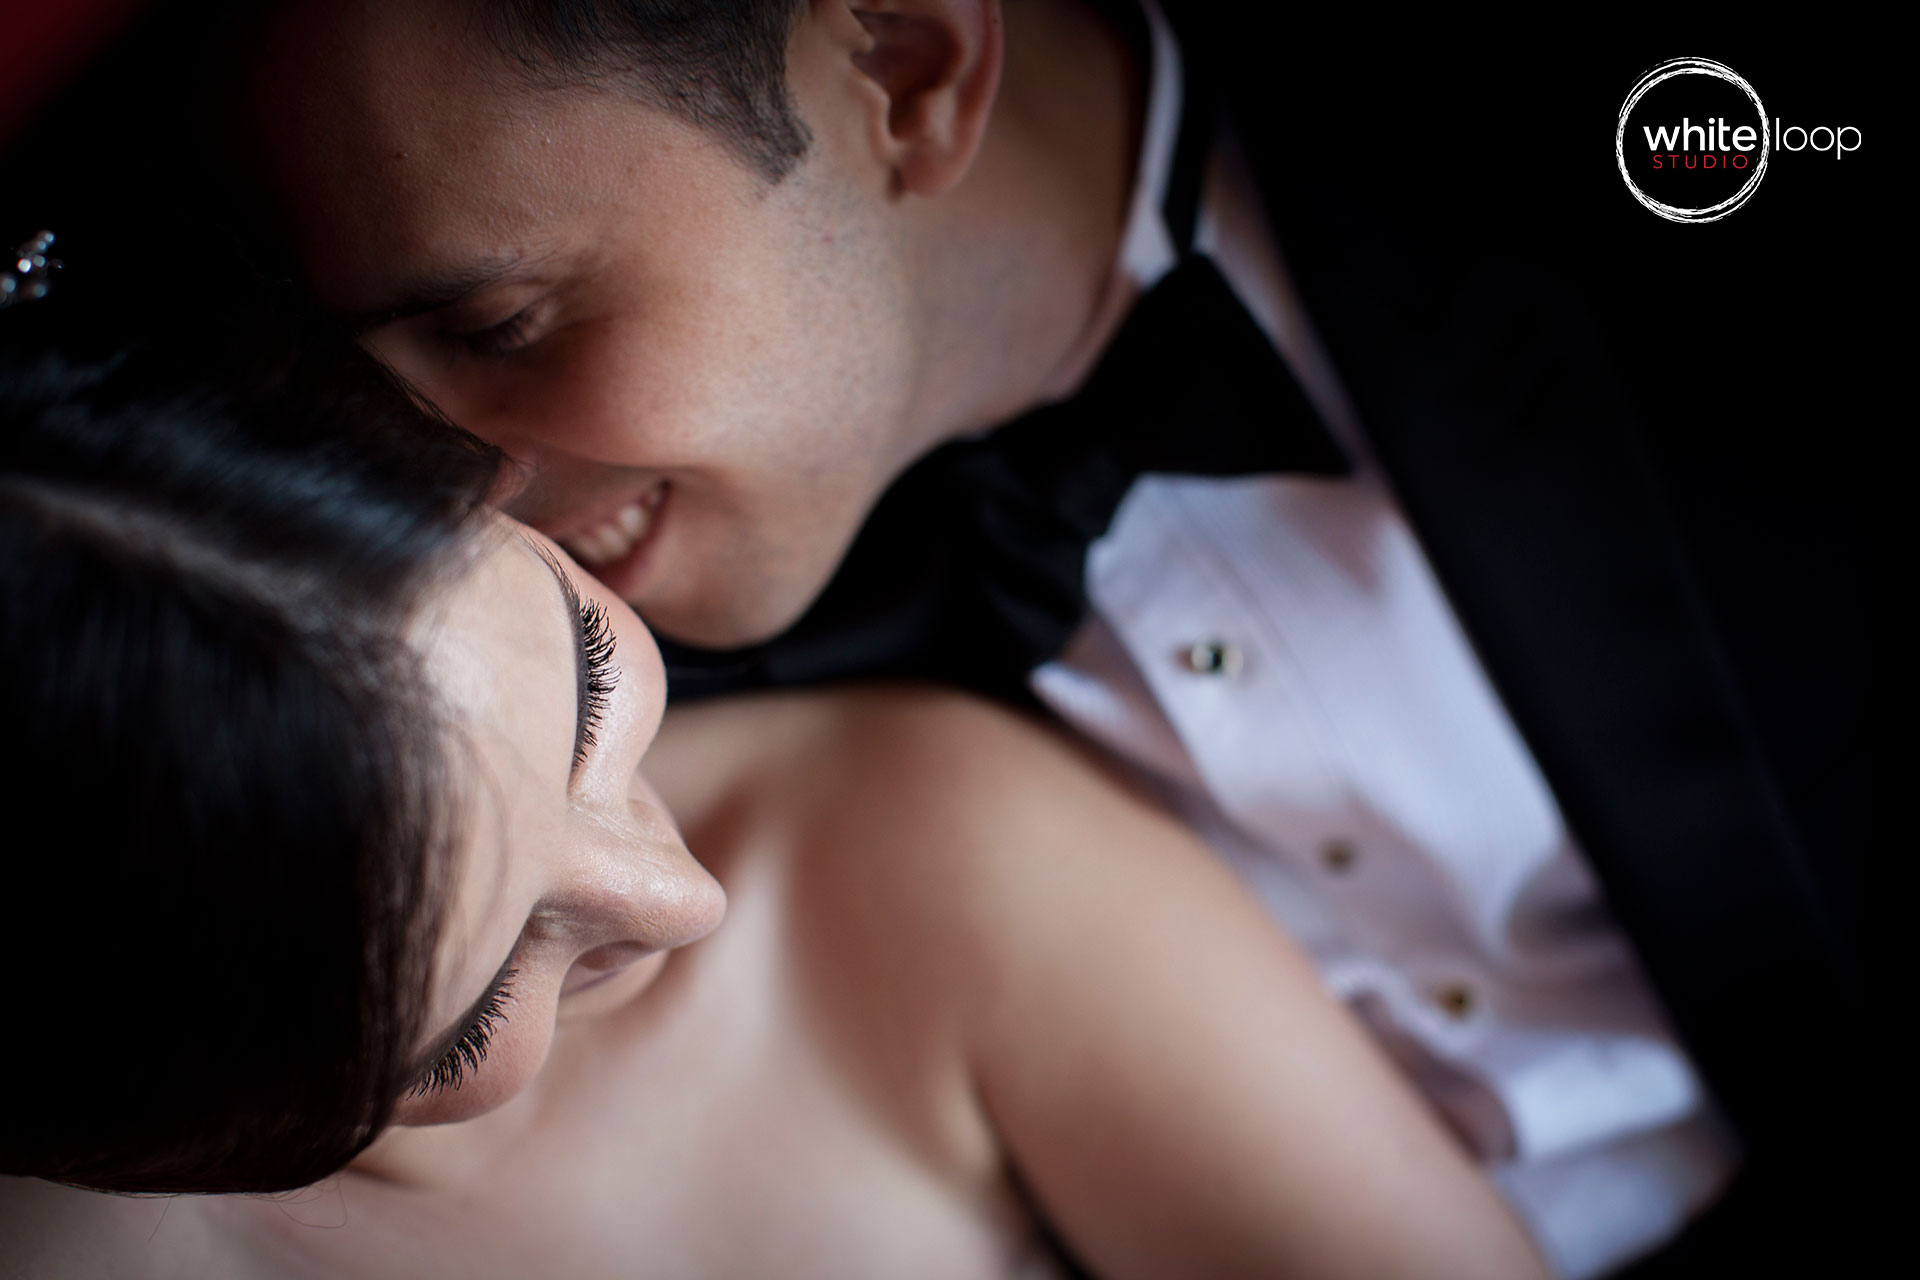 Photography of bride and groom taken from above, capturing the moment before an affectionate kiss.